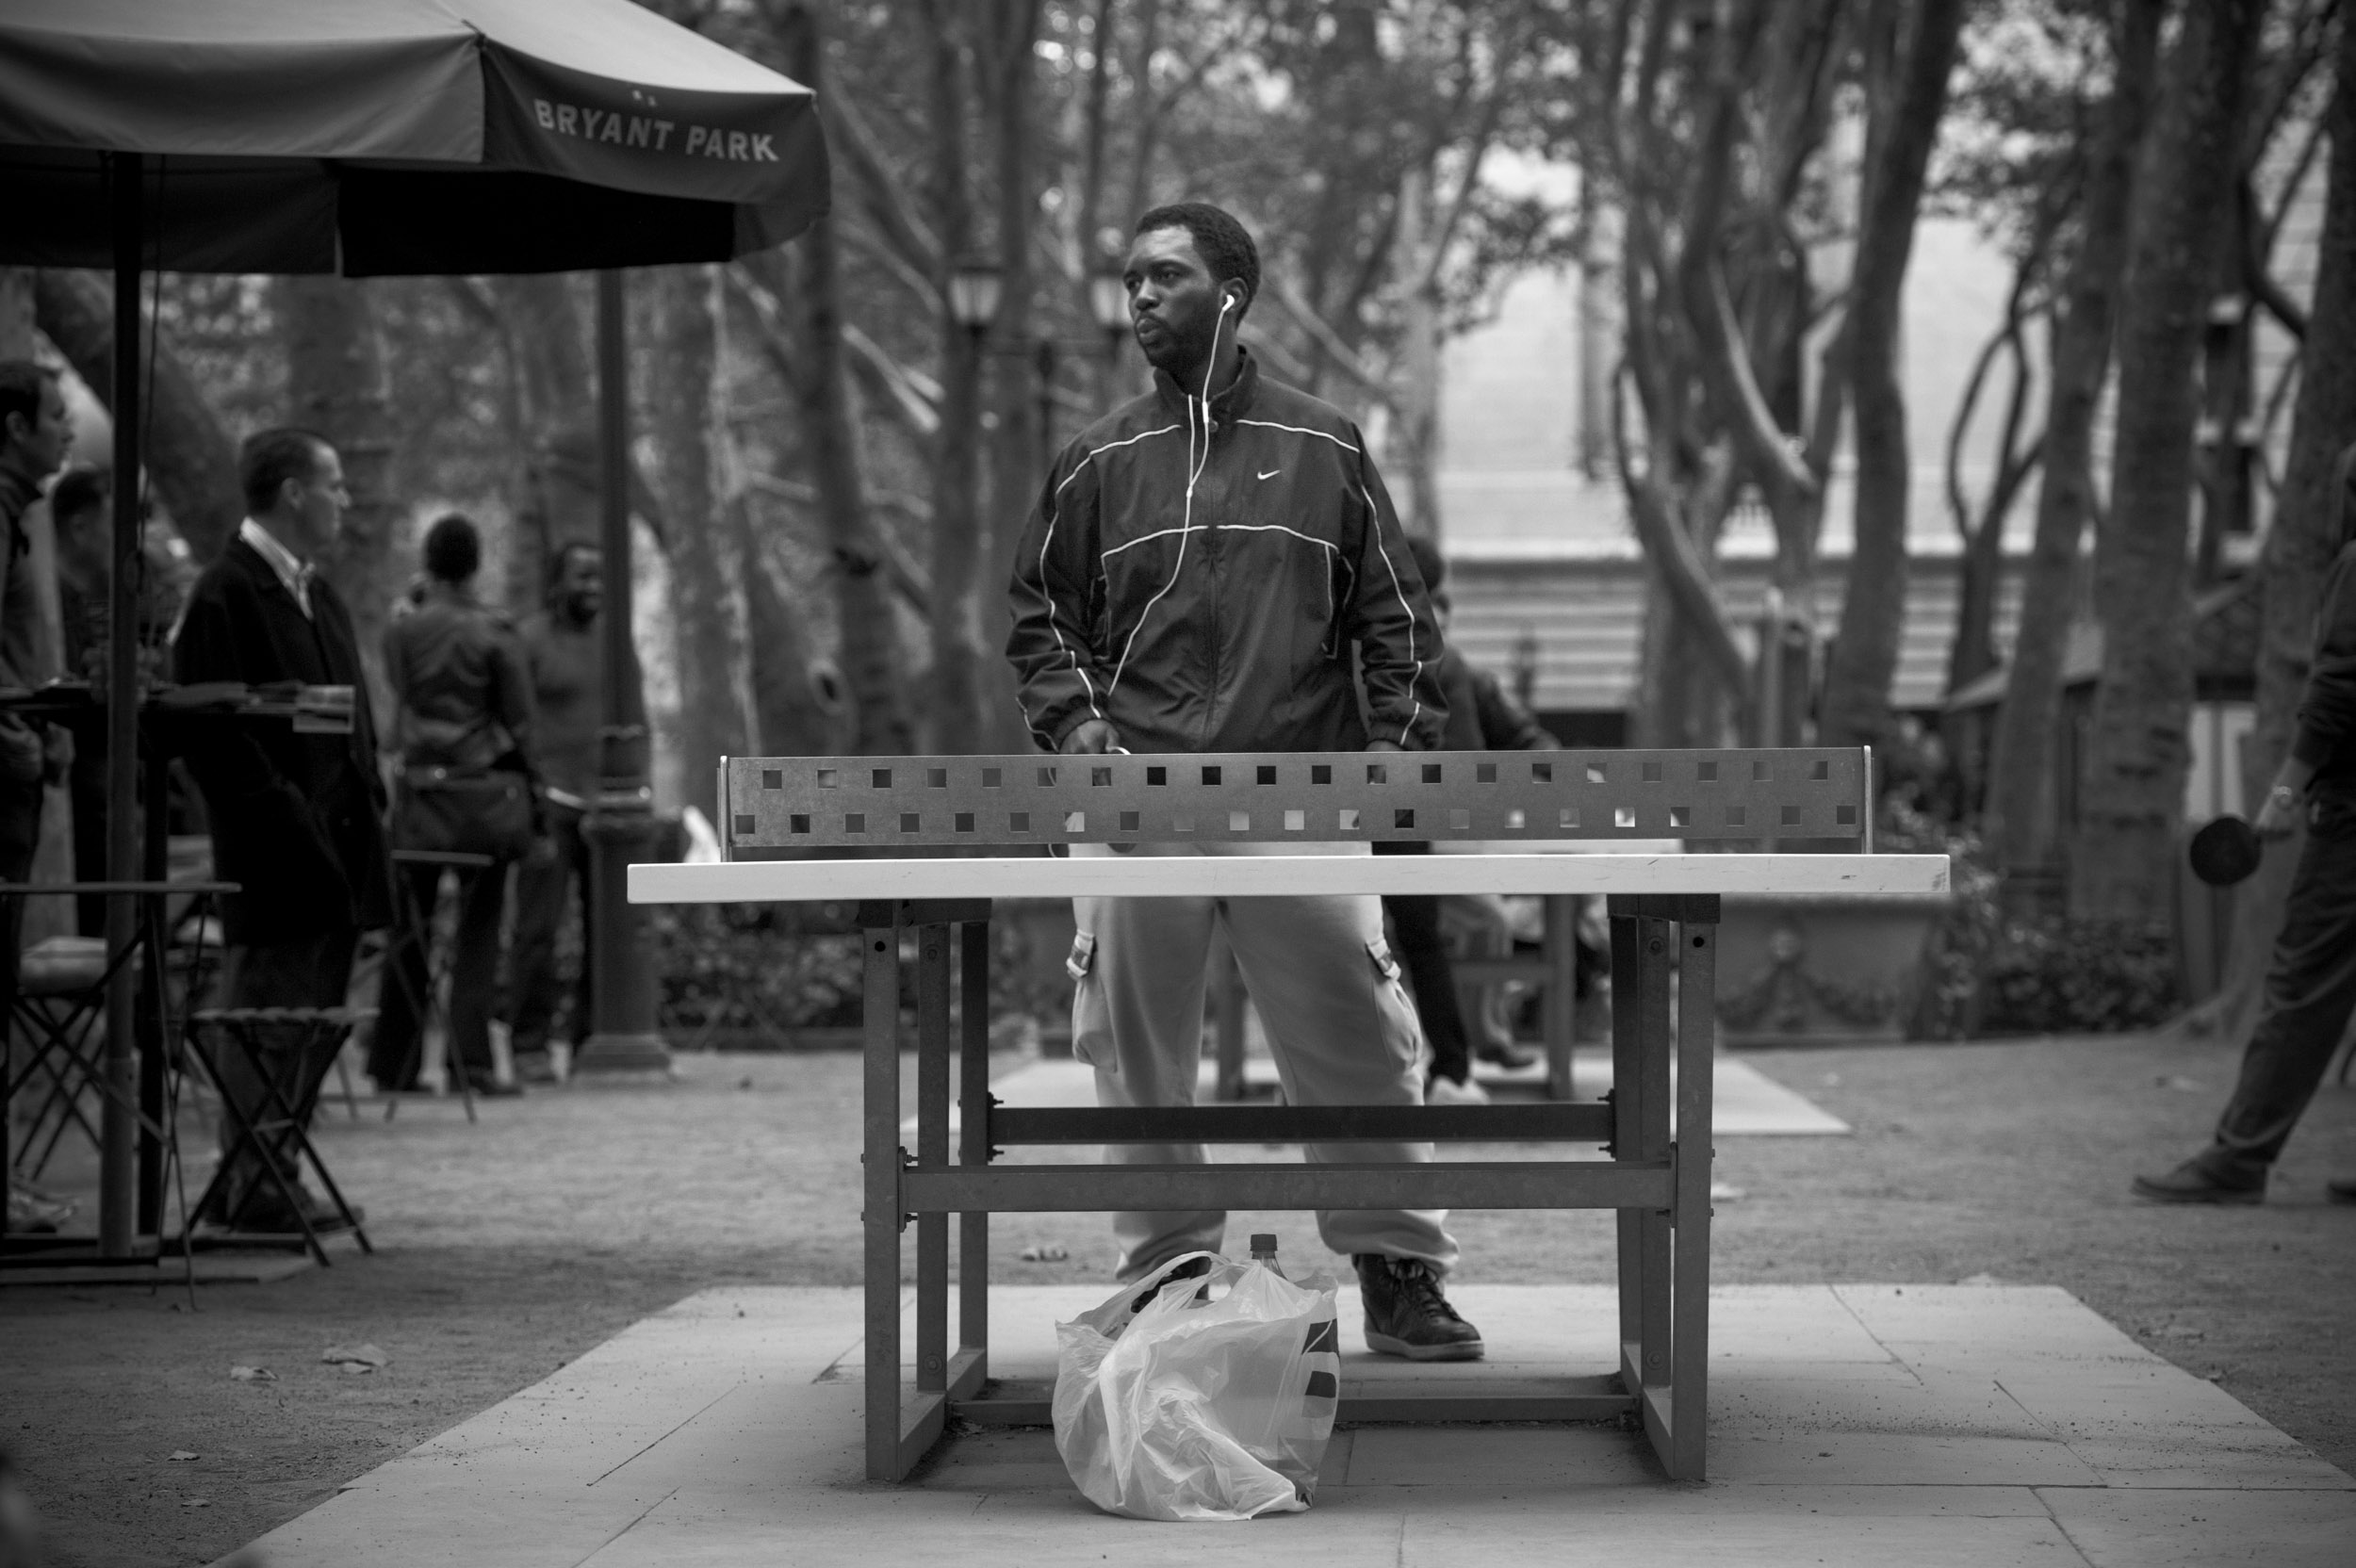 pam_korman_photography-ping-pong_diplomacy-bryant_park_new_york_city-16.jpg